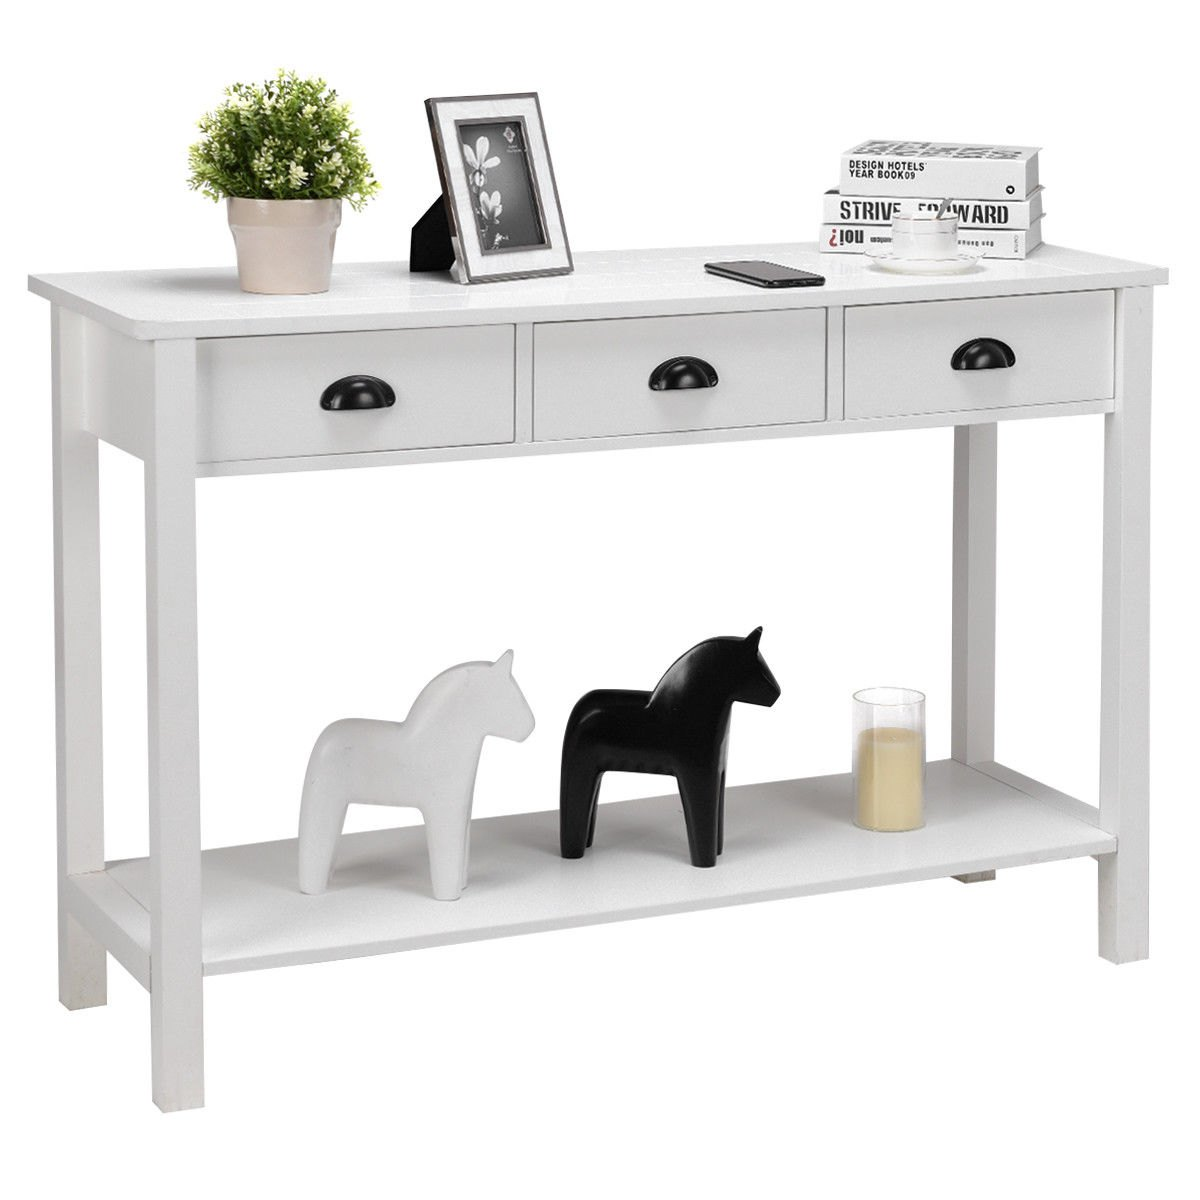 way console table hall side desk accent drawers shelf entryway white next dining room furniture sofa end black rug outdoor bbq grill silver decor dale tiffany chandelier threshold